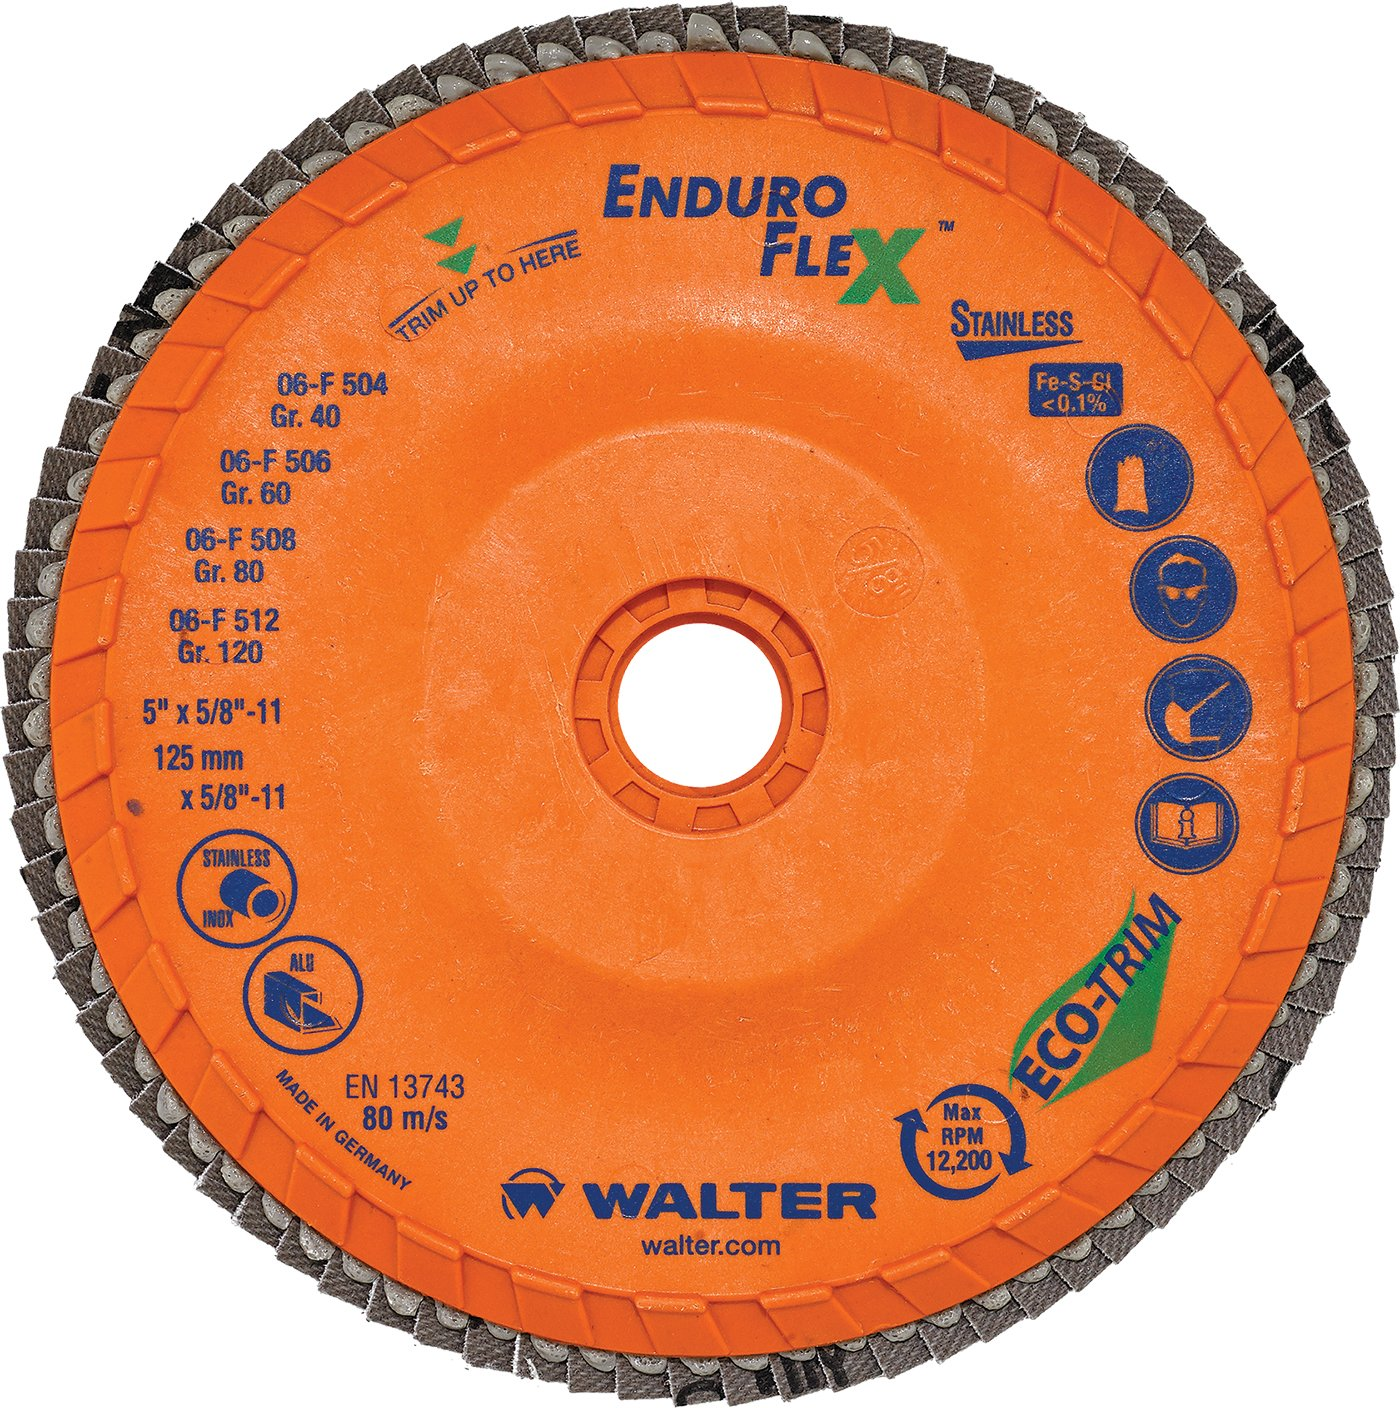 Walter Surface Technologies 15Q458 Enduro-Flex Stainless Abrasive Flap Disc Type 29 Pack of 10 7//8 Arbor Zirconia Alumina 7//8 Arbor Trimmable Wood Fiber Backing 80 Grit